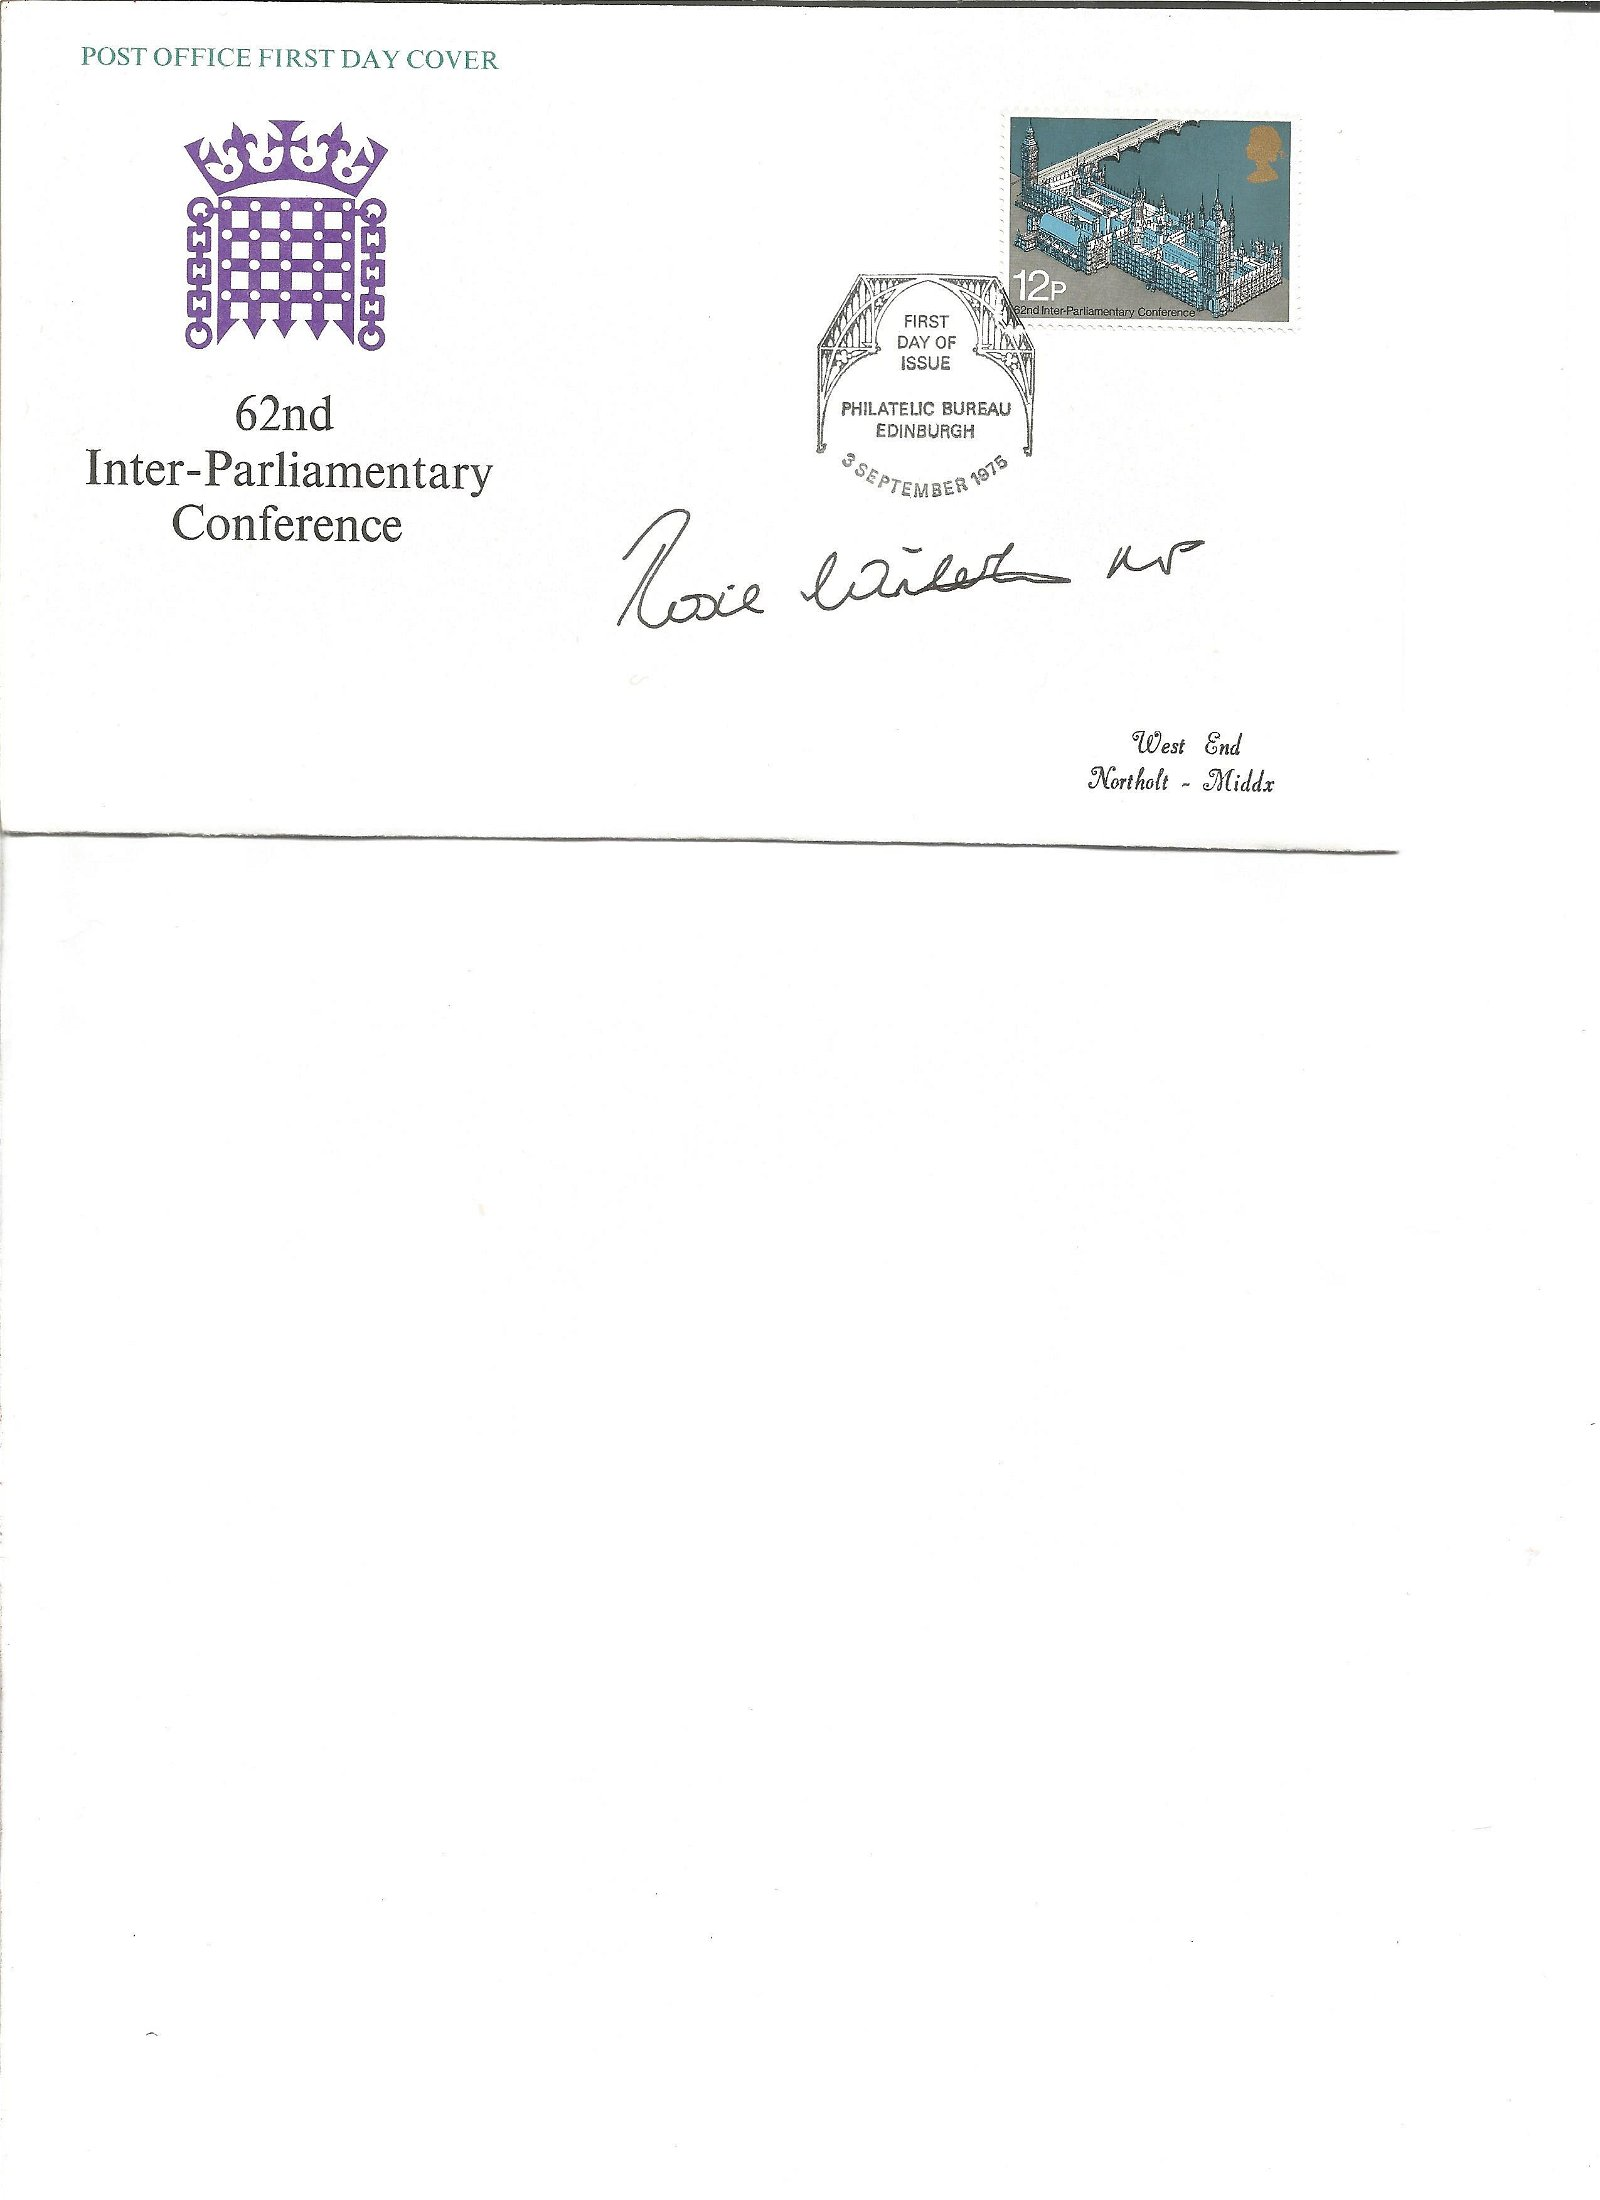 Rosie Winterton signed cover. Good Condition. All